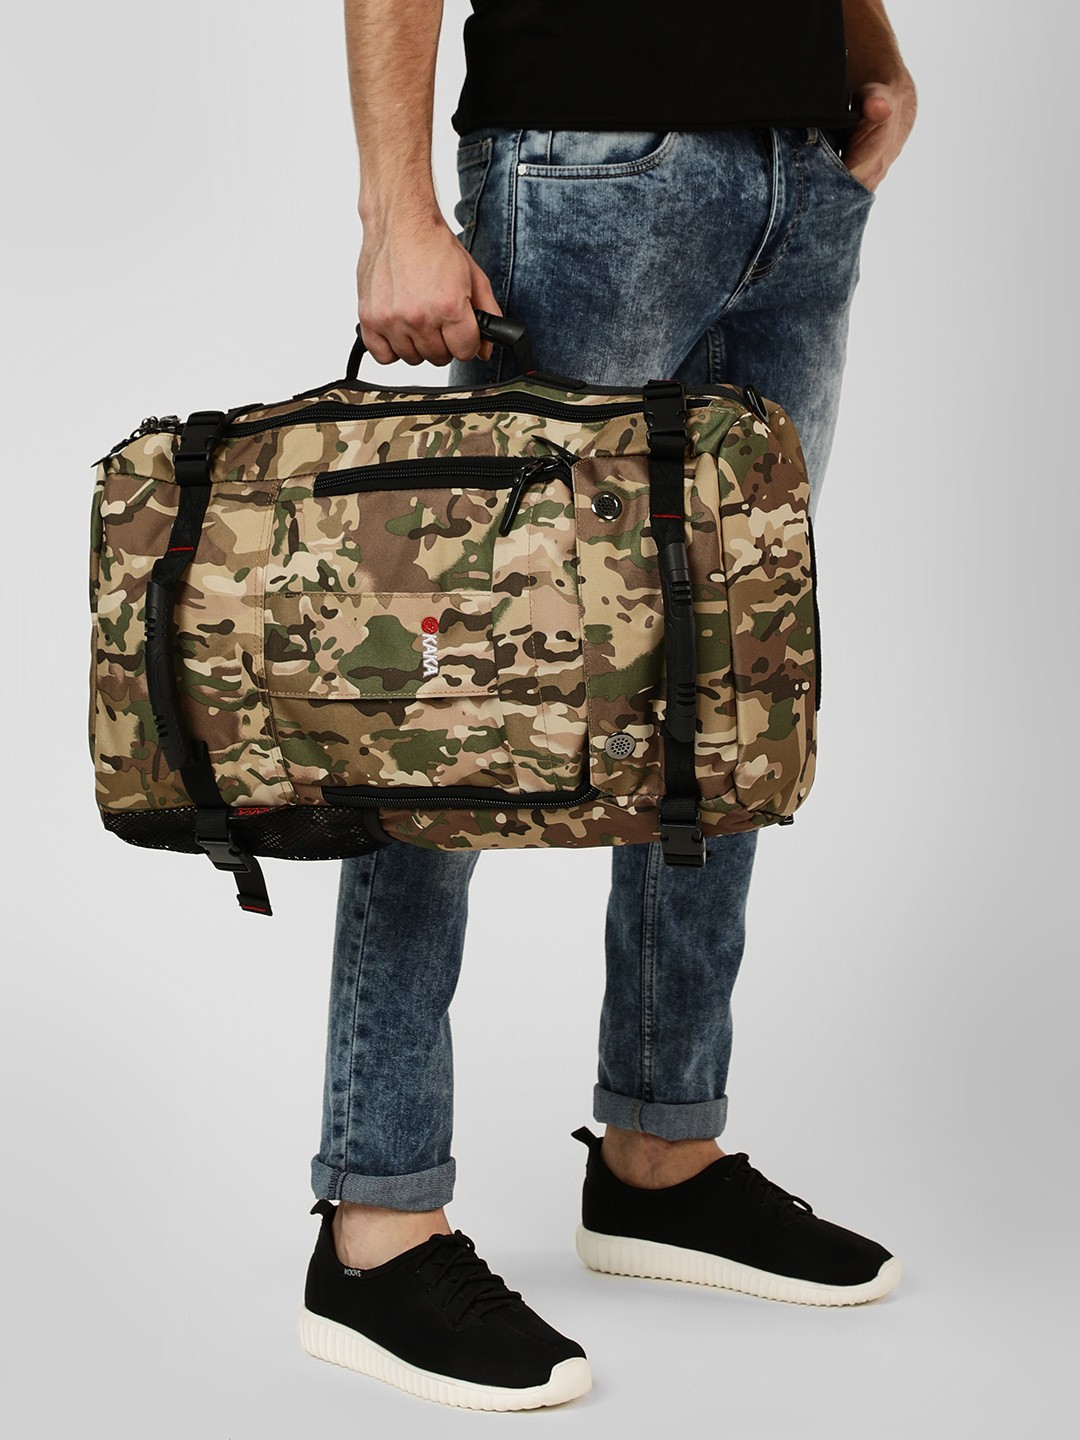 KAKA Multi Camouflage 3-Way Hiking Duffle Bag 1